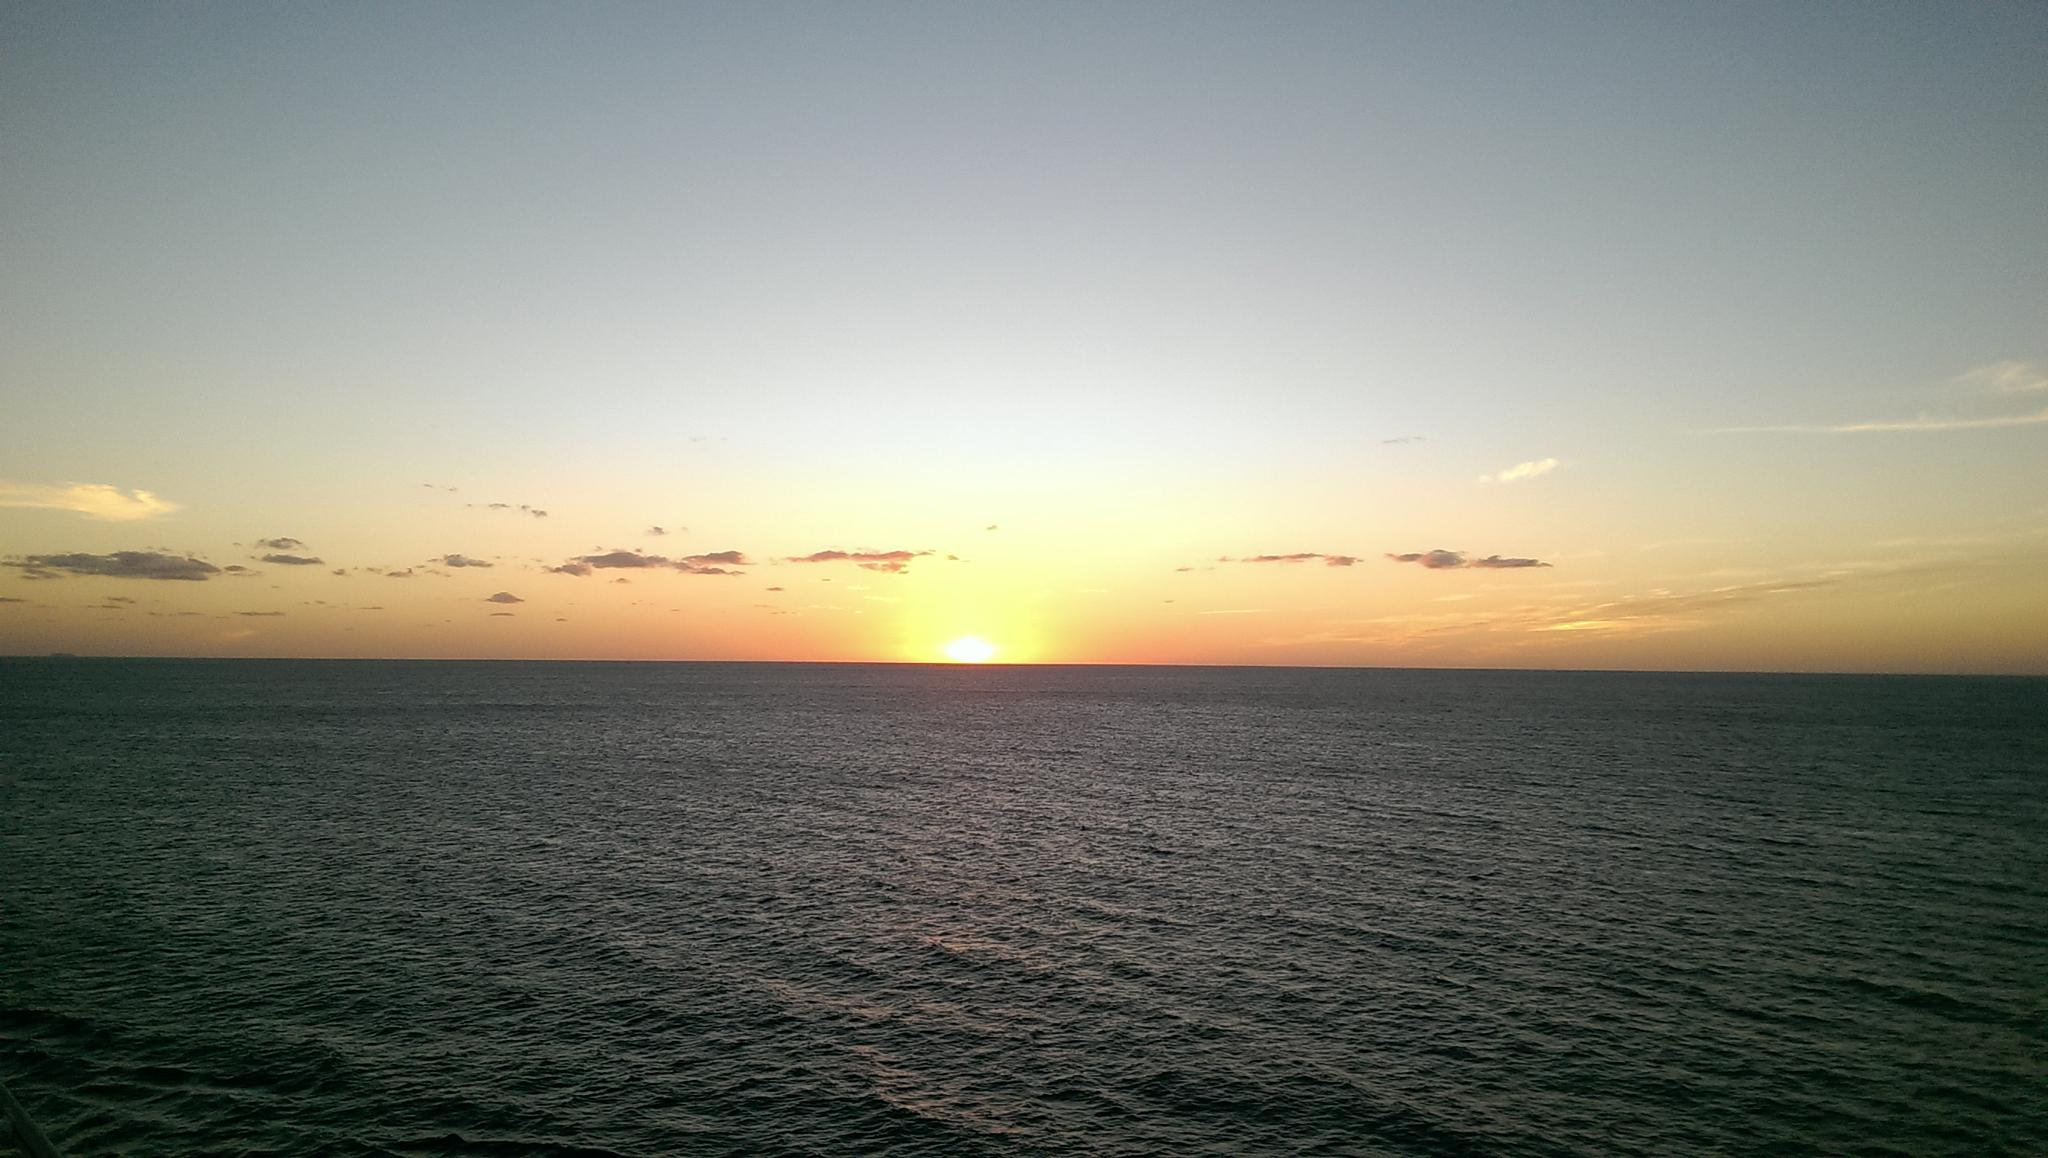 Sunset in the Caribbean  by palo905